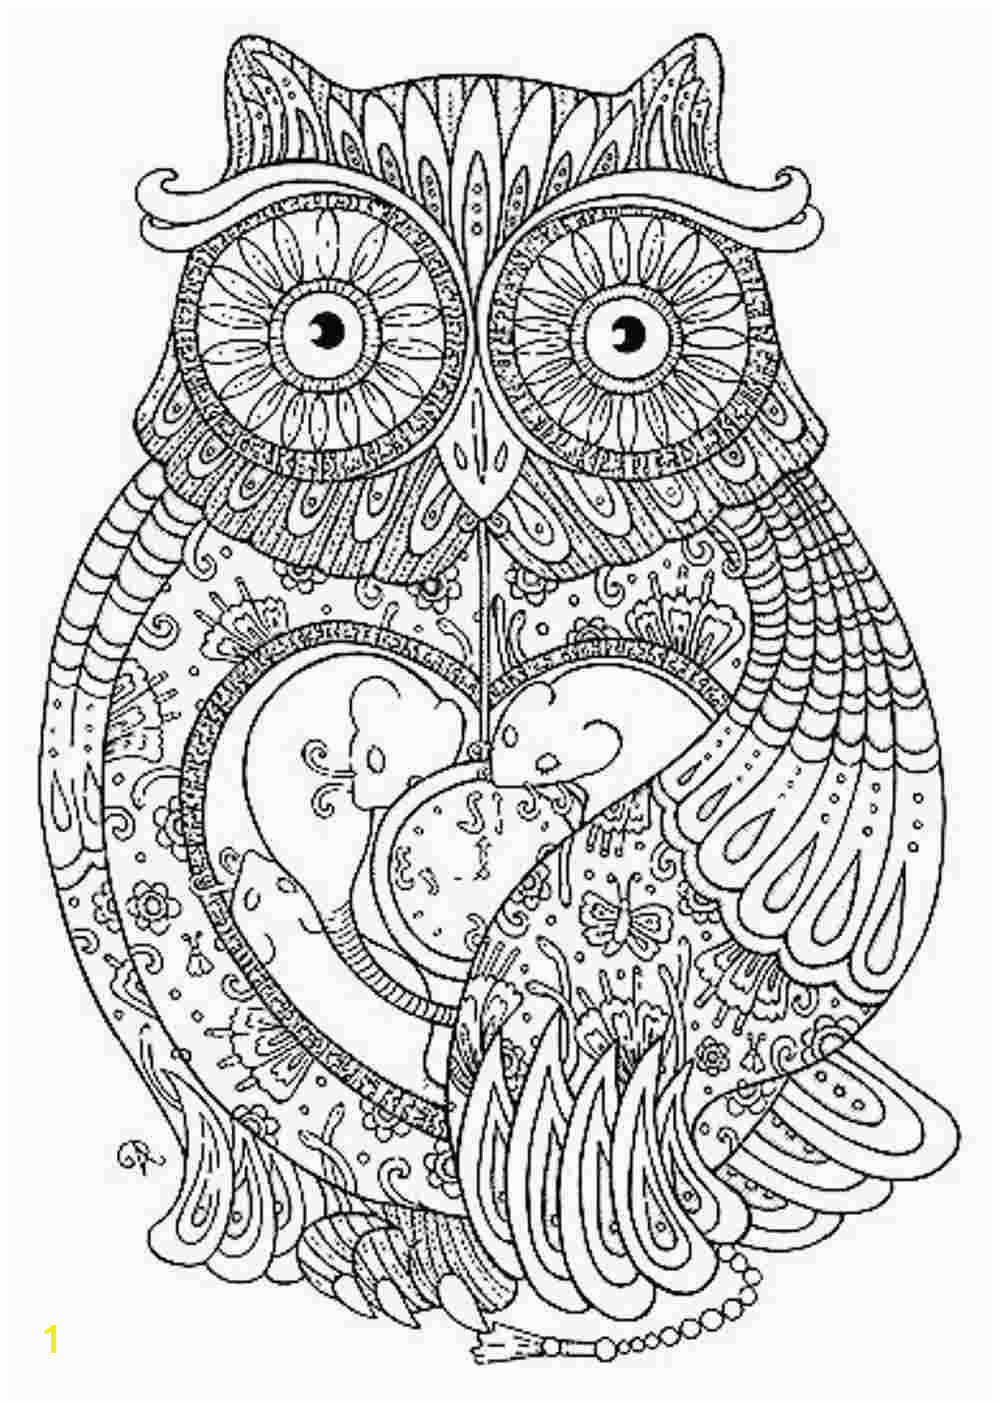 Animal mandala coloring pages to and print for free Owl Coloring Pages Free Printable